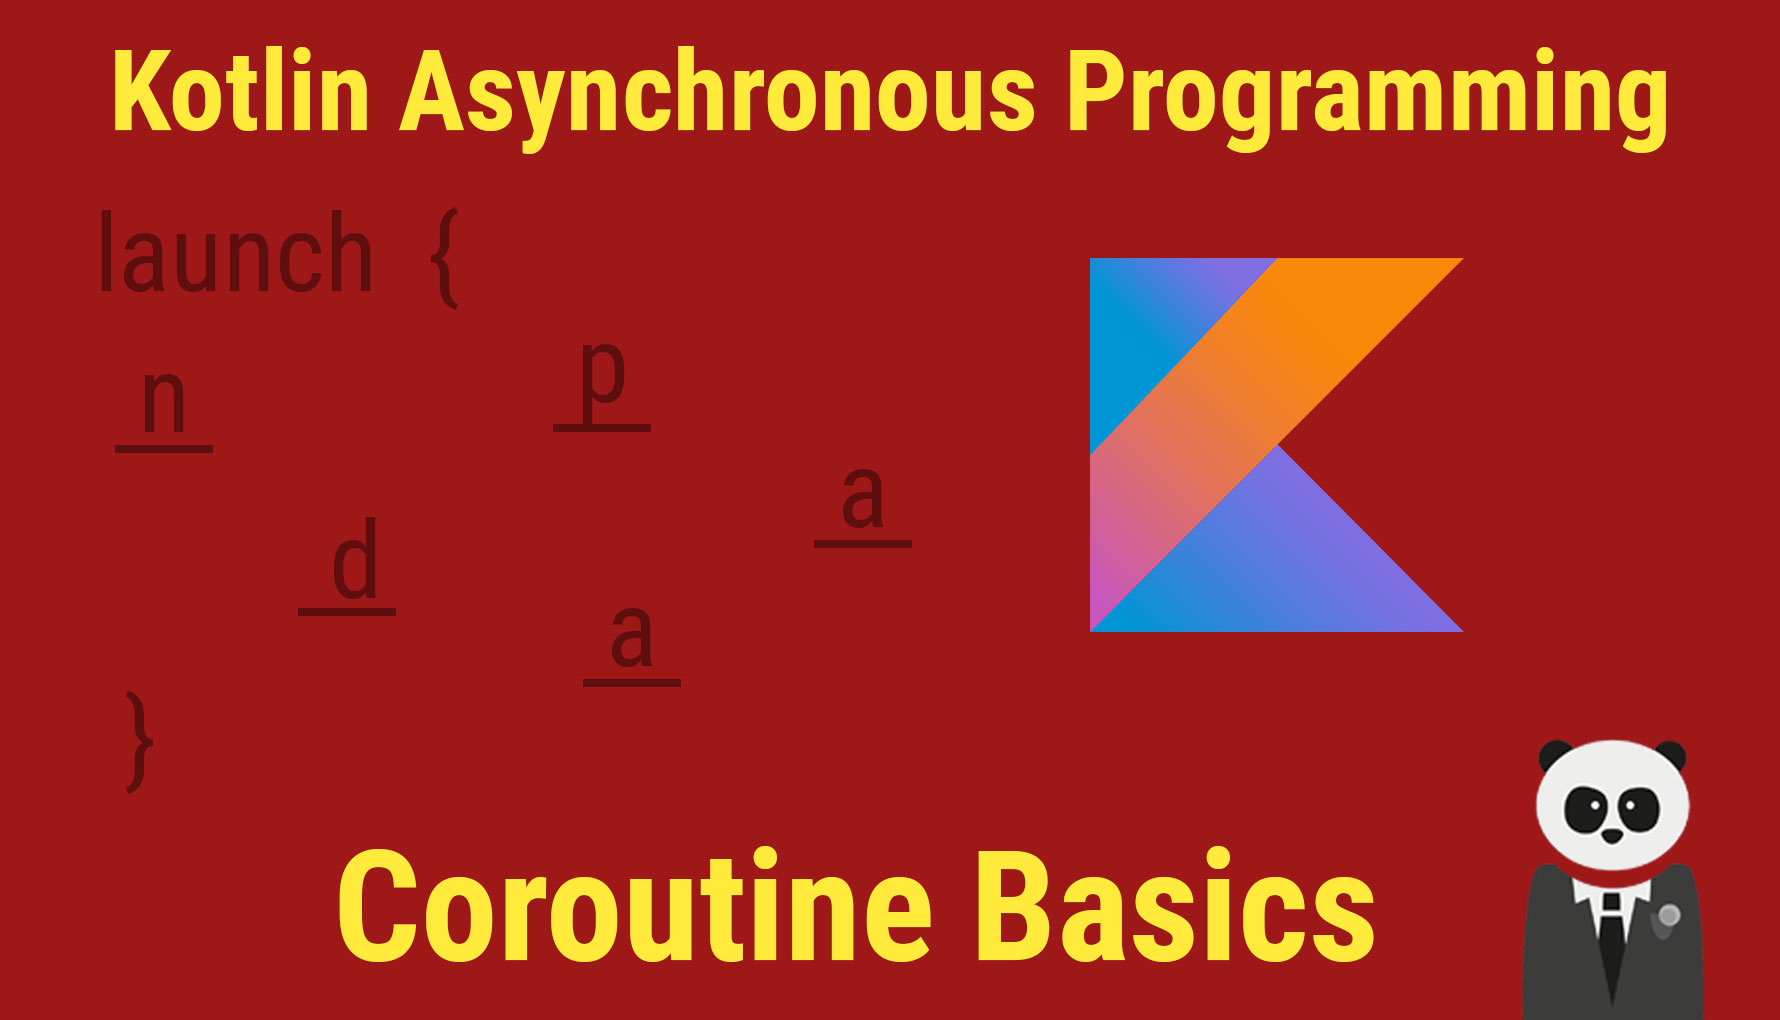 Coroutine Basics: Asynchronous Programming with Kotlin